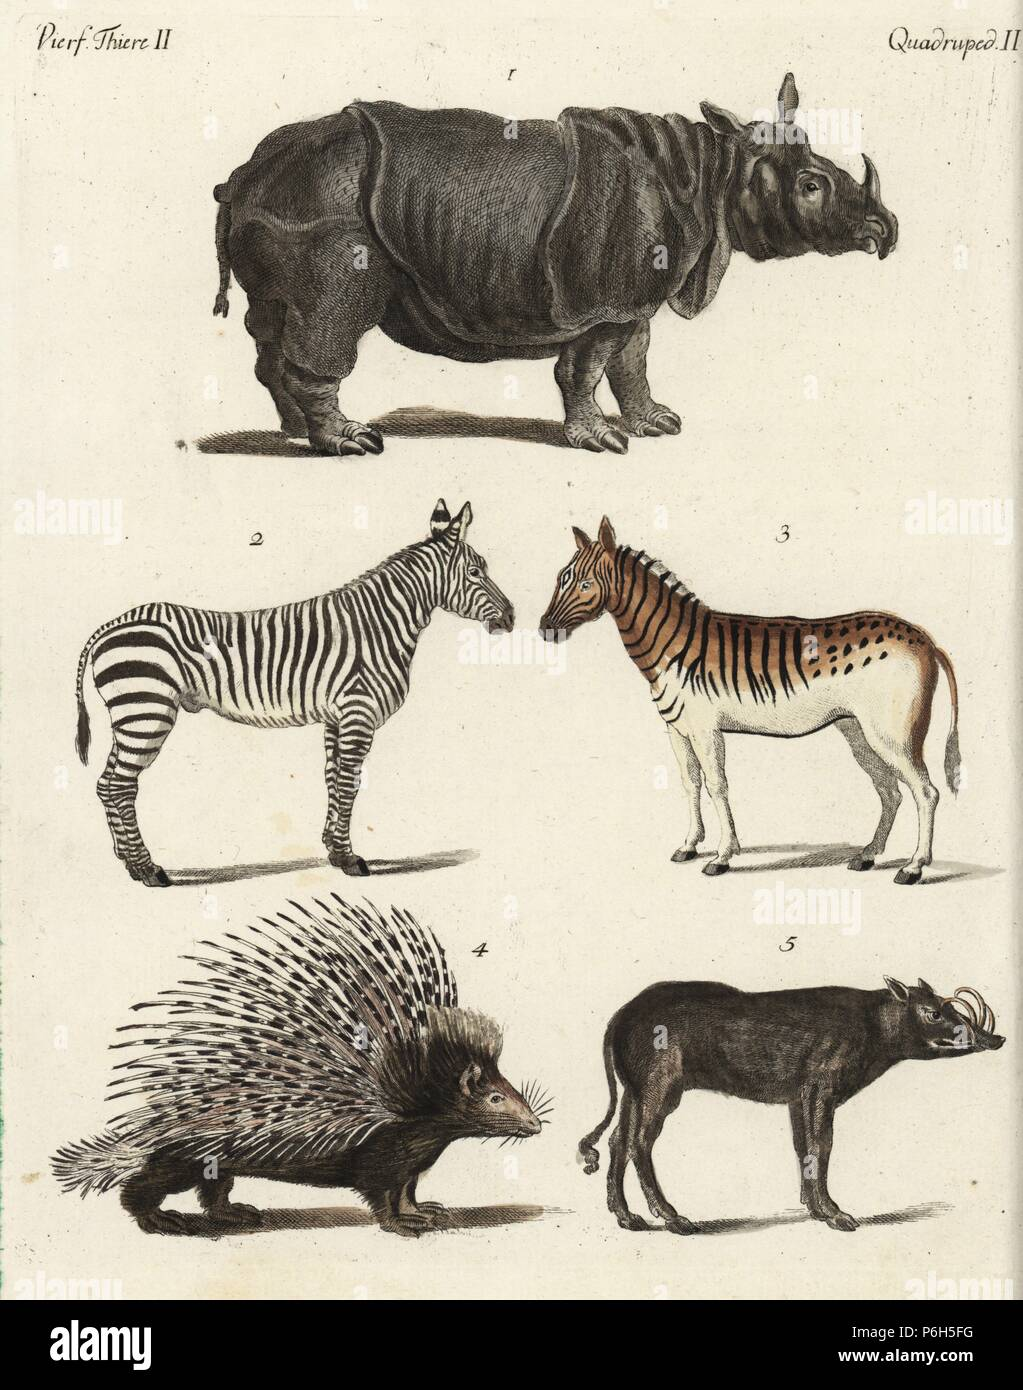 Indian rhinoceros, Rhinoceros unicornis, plains zebra, Equus quagga, male 2, female 3, Indian porcupine, Hystrix indica, and Sulawesi babirusa, Babyrousa celebensis. Handcoloured copperplate engraving from Bertuch's 'Bilderbuch fur Kinder' (Picture Book for Children), Weimar, 1792. Friedrich Johann Bertuch (1747-1822) was a German publisher and man of arts most famous for his 12-volume encyclopedia for children illustrated with 1,200 engraved plates on natural history, science, costume, mythology, etc., published from 1790-1830. - Stock Image